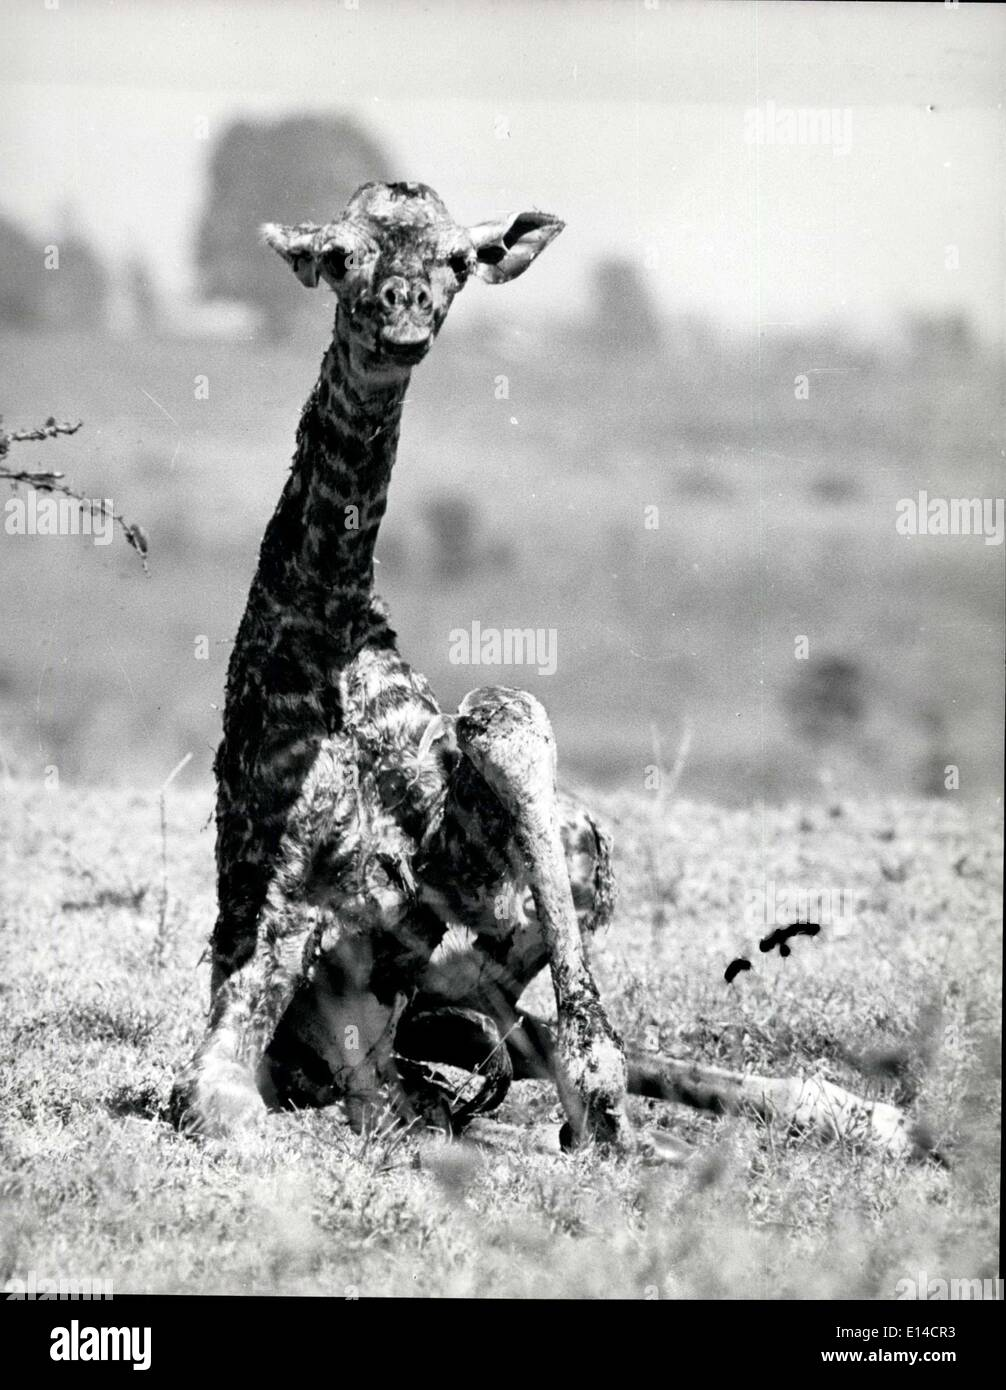 Apr. 17, 2012 - New Born giraffe tries to stand for the fist time.UM - Stock Image